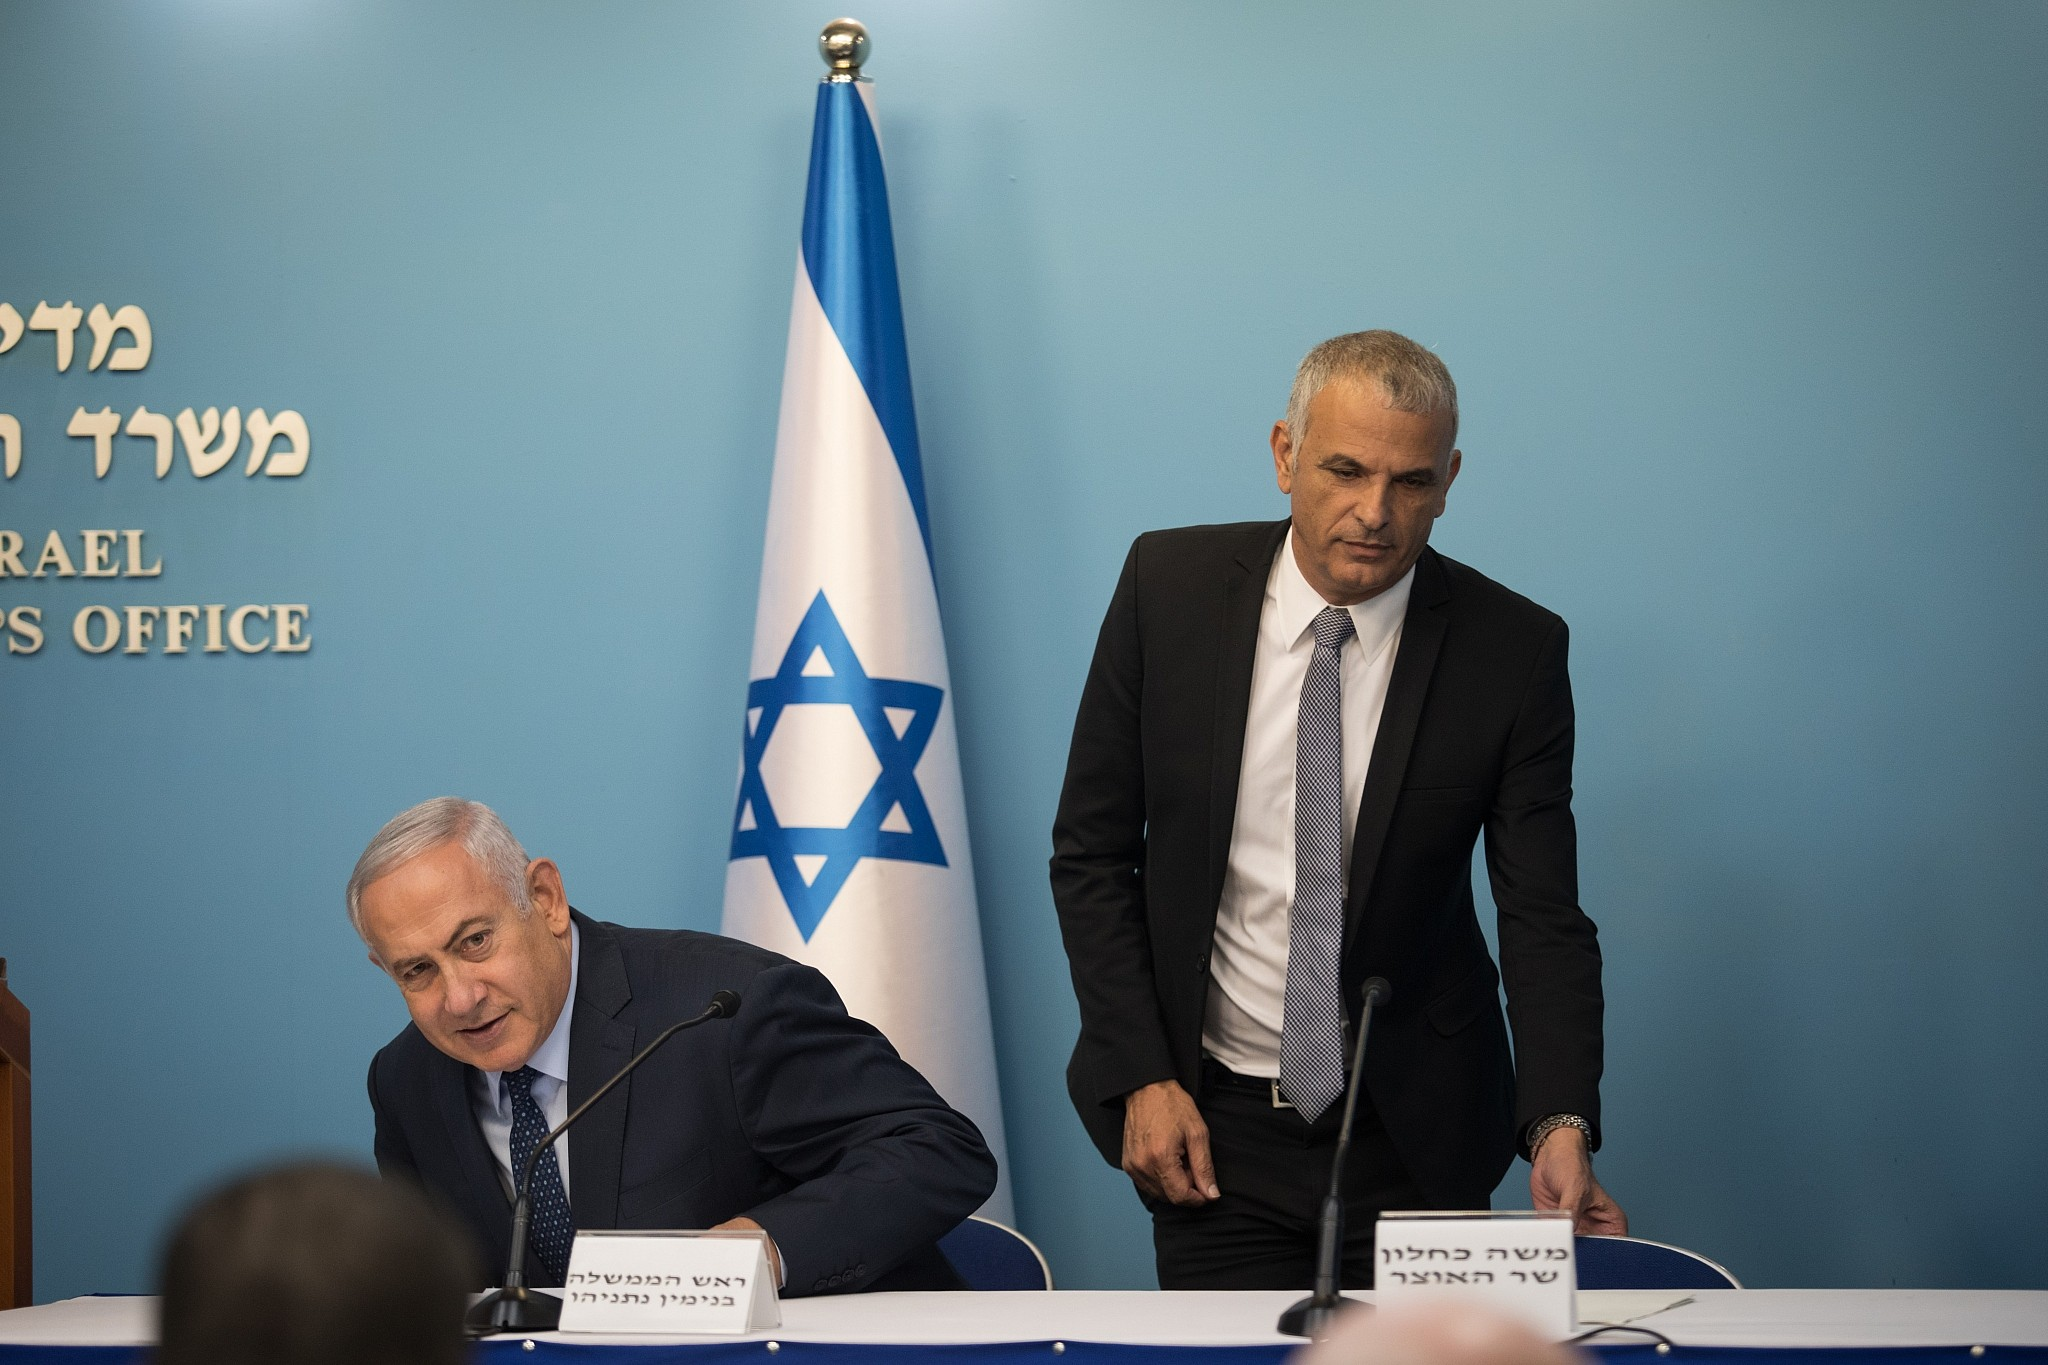 Israel set for early elections after cabinet breaks up, source says